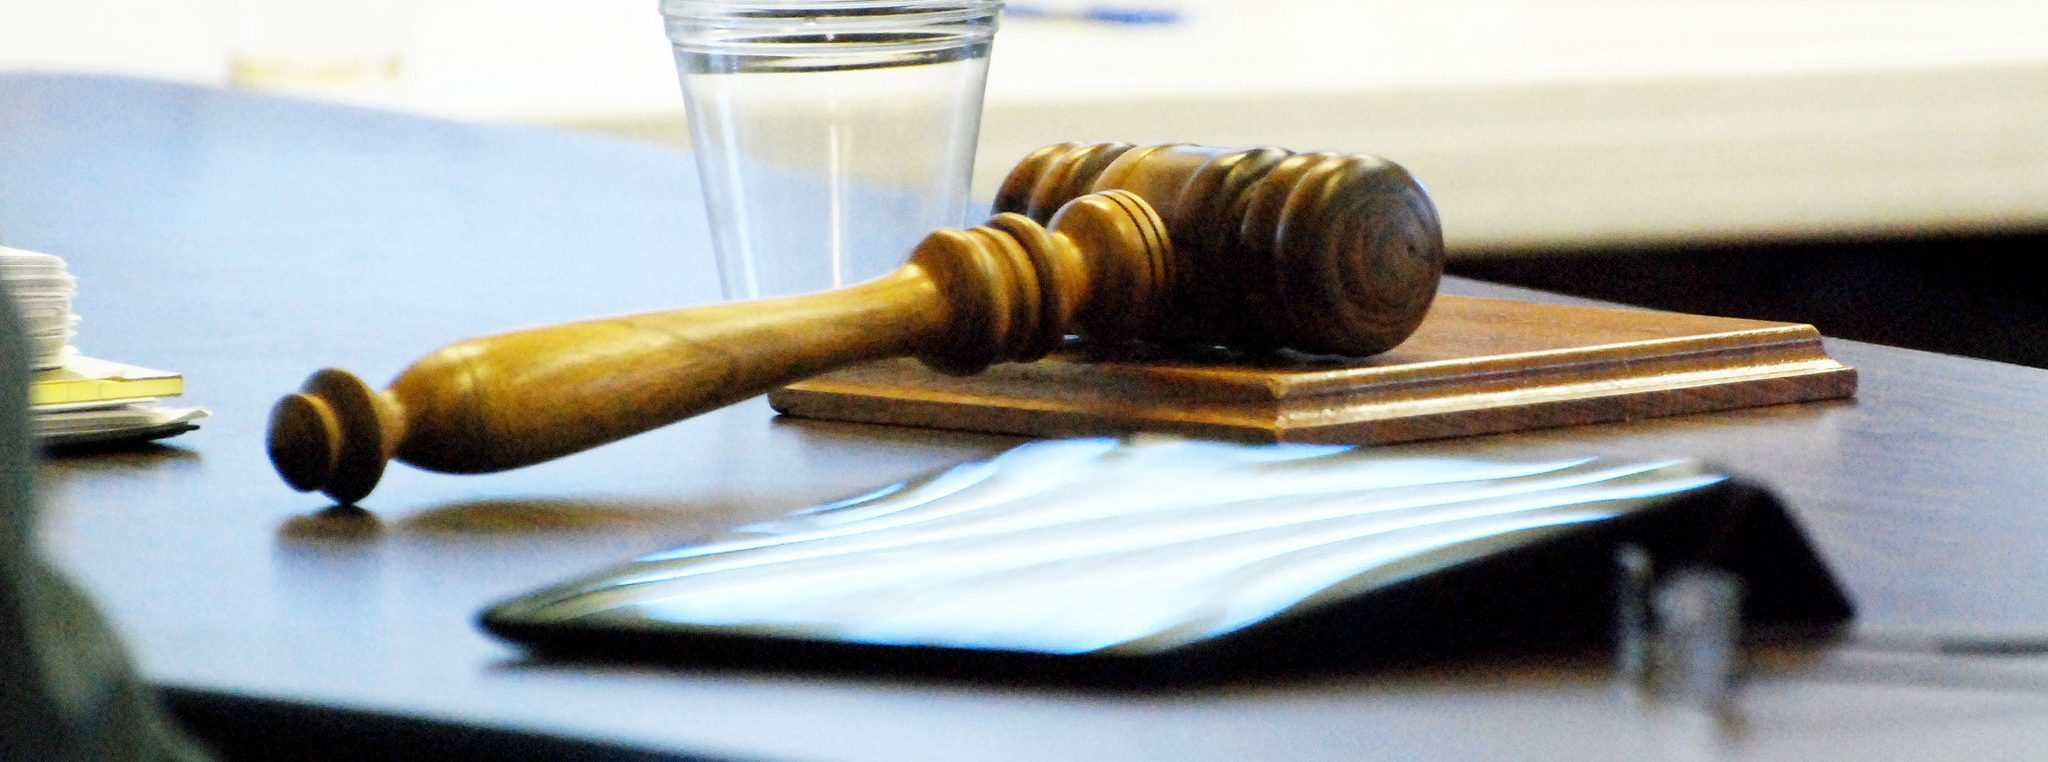 Gavel on table at meeting